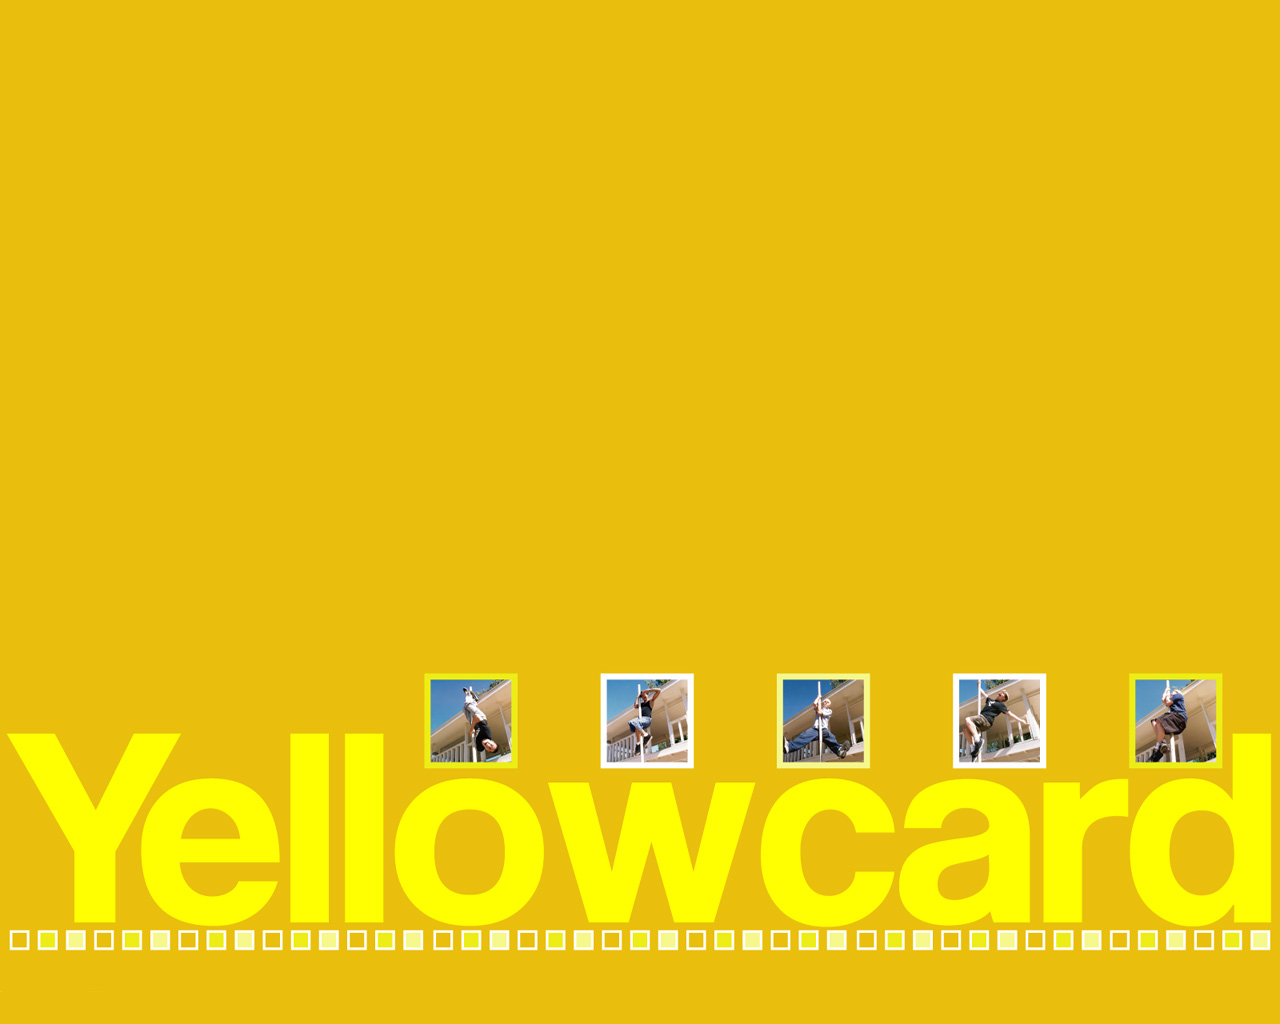 Yellowcard Images Yellowcard HD Wallpaper And Background